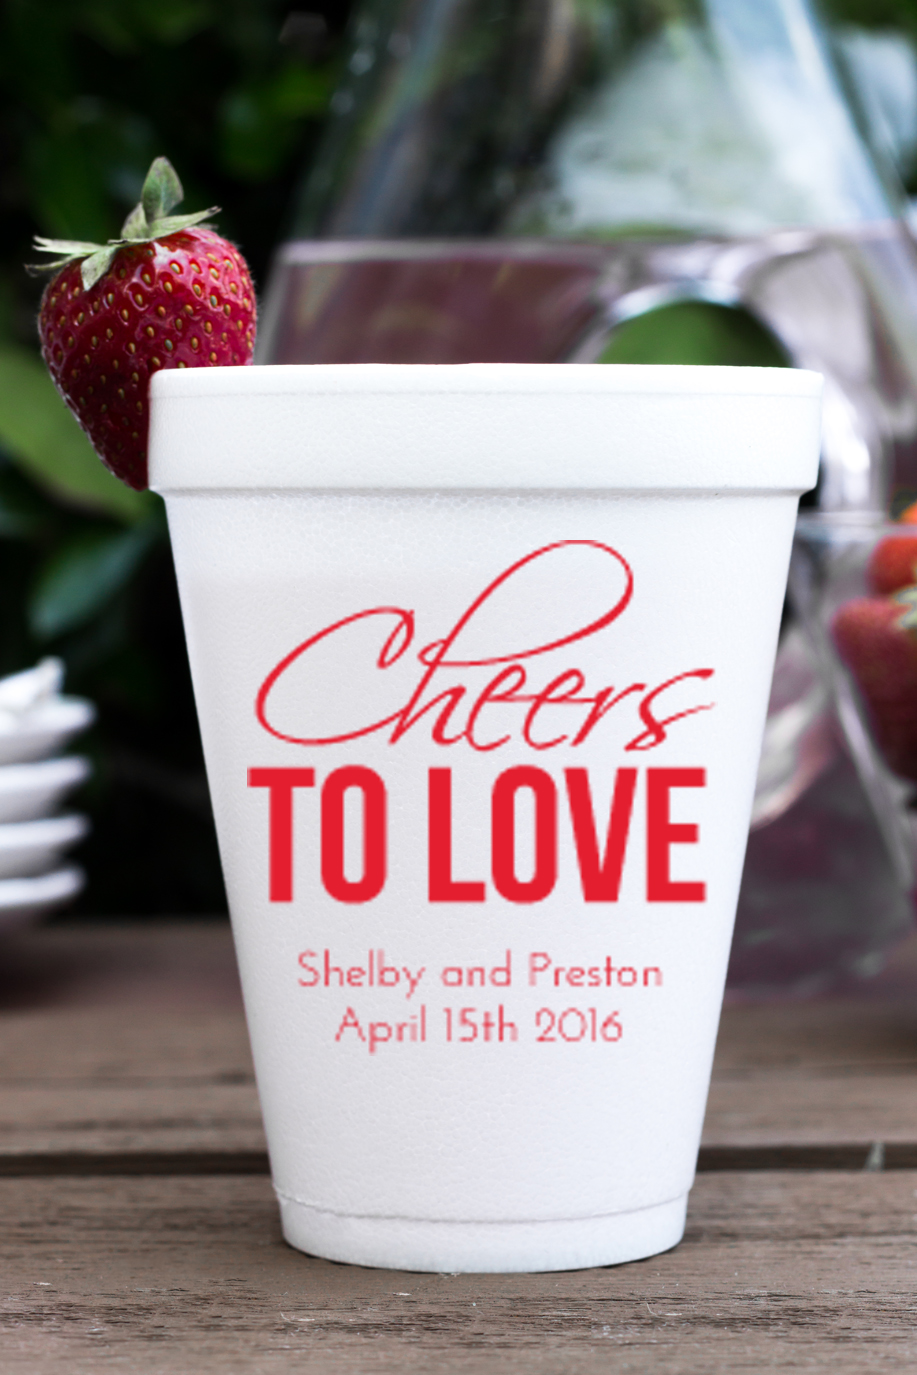 Personalized foam cup 12 oz- Cheers to Love wedding favors